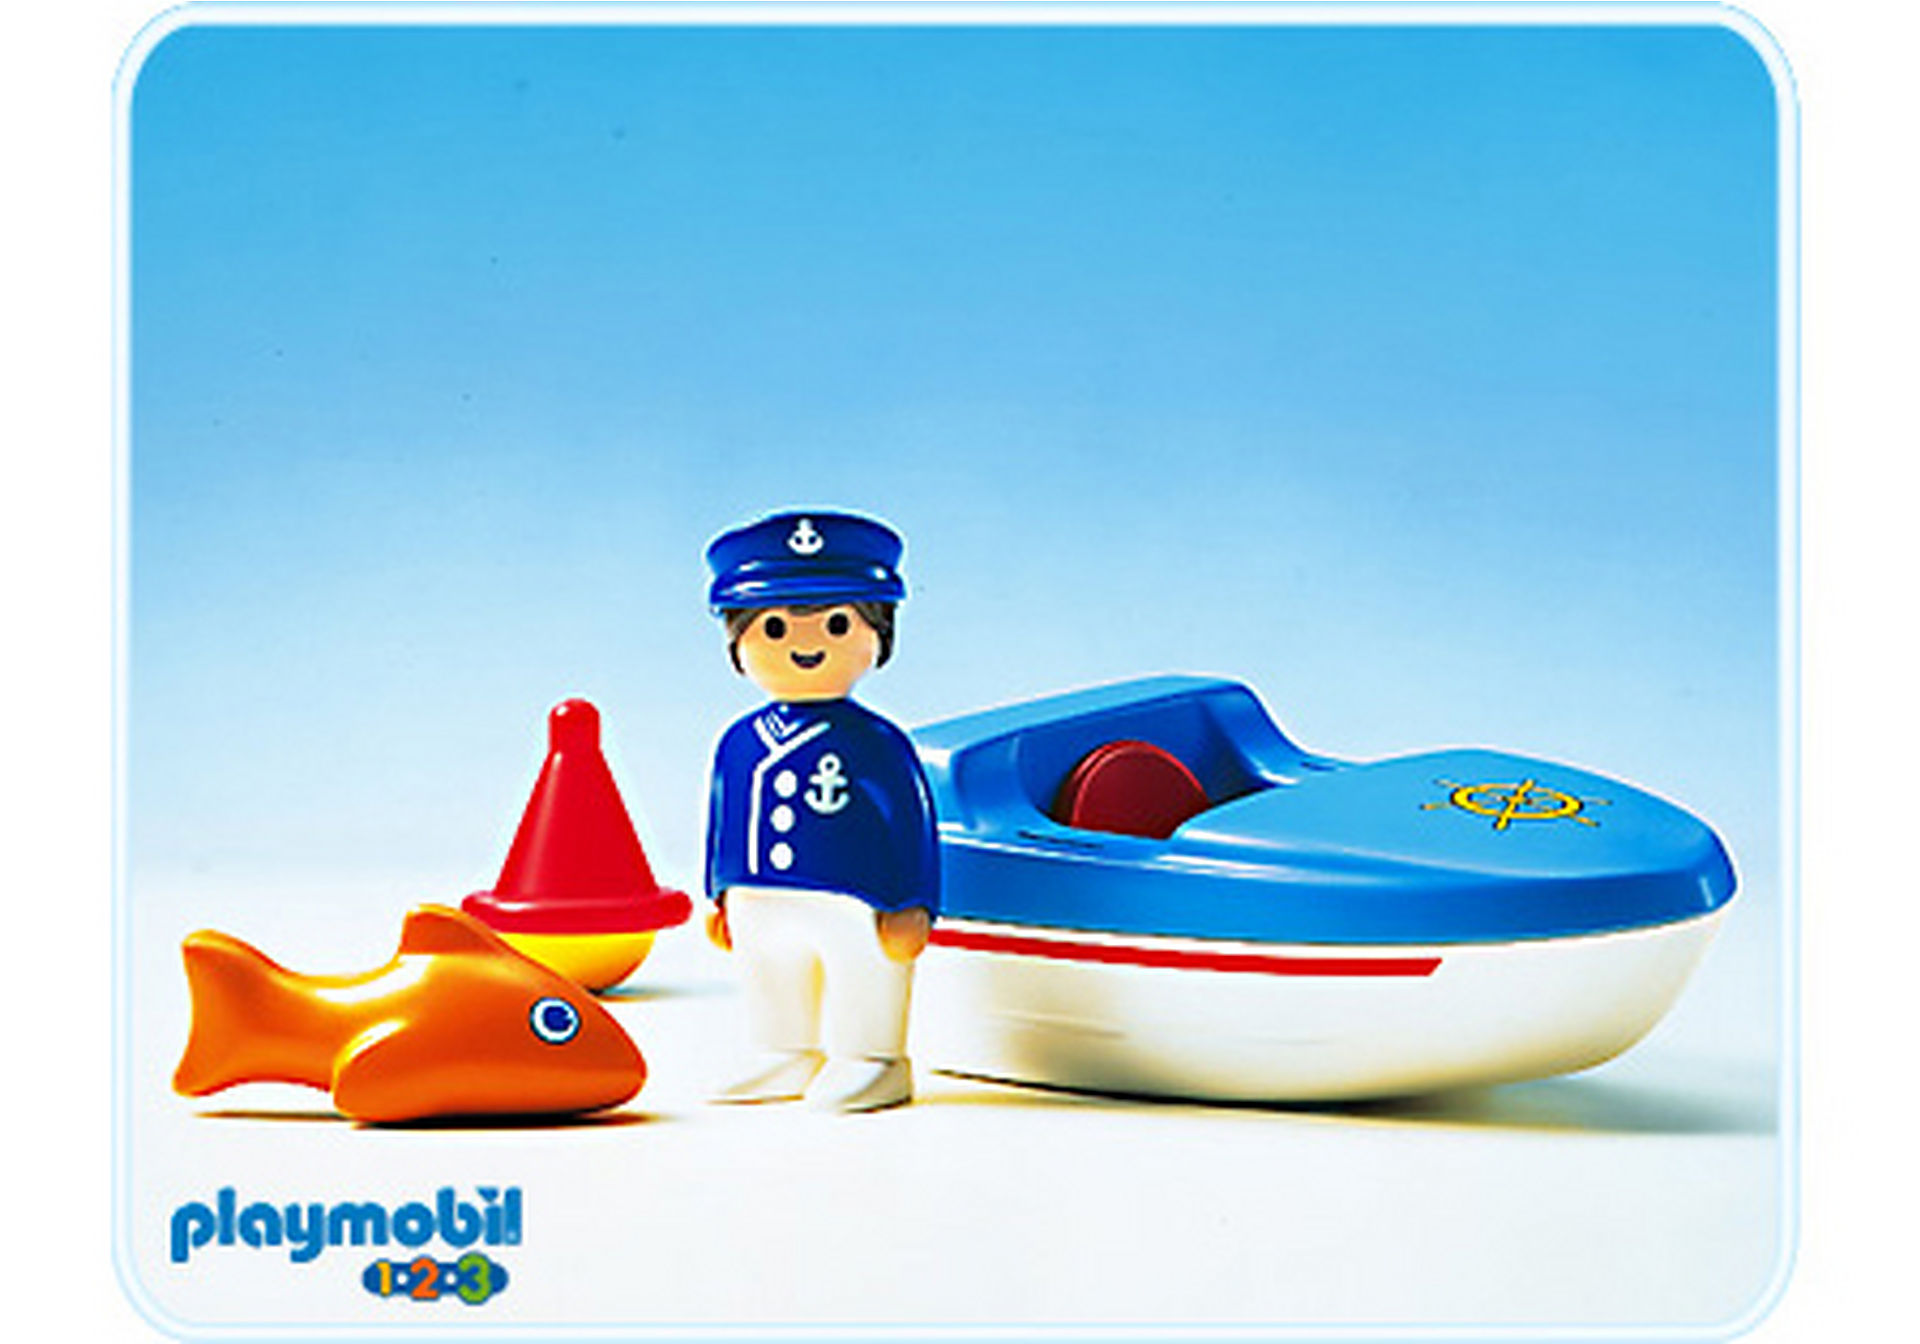 http://media.playmobil.com/i/playmobil/6701-A_product_detail/Bateau/capitaine/poisson/bouée